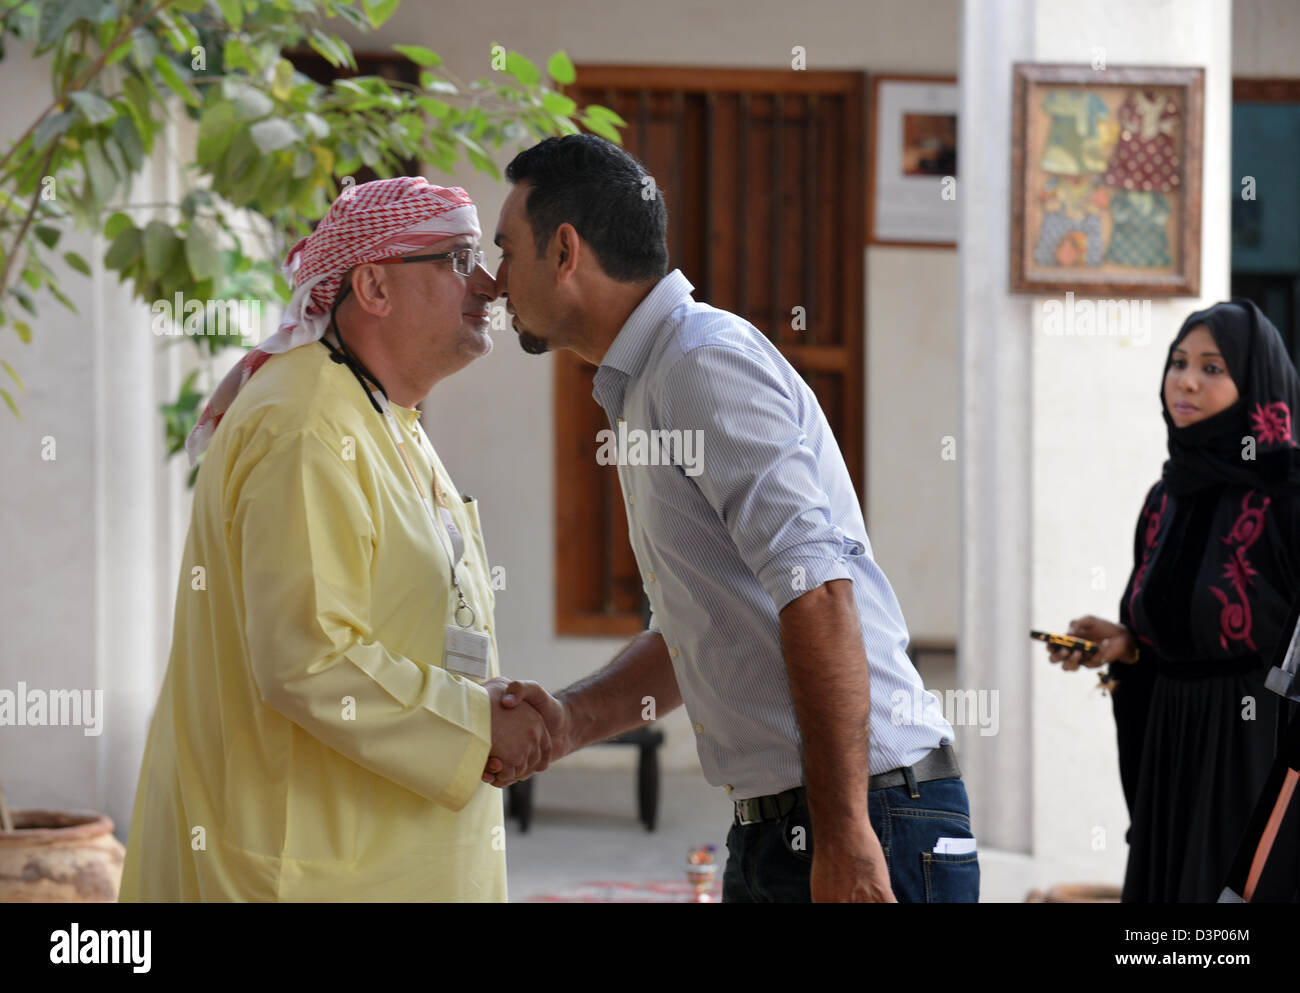 Two arab men greeting each other they are familiar they rub two arab men greeting each other they are familiar they rub their noses together to handshake kristyandbryce Choice Image